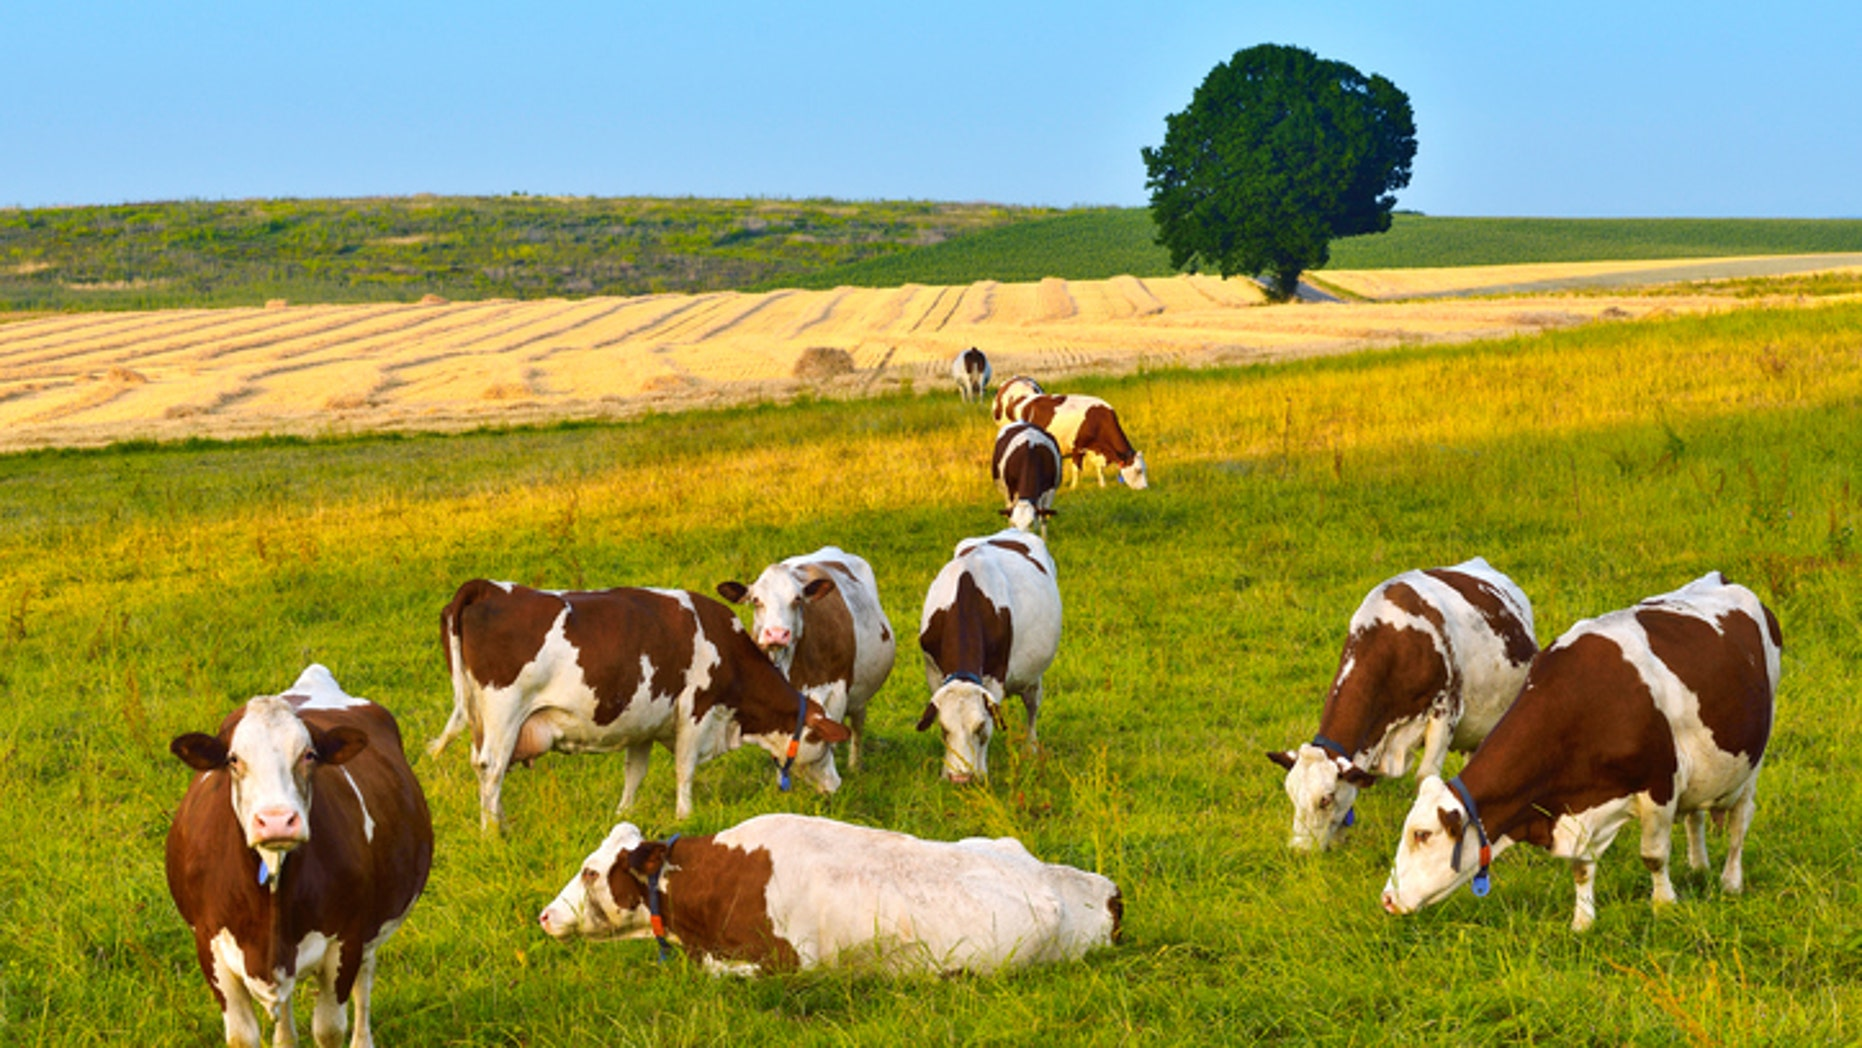 Cows herd on the grassy field at sunset.